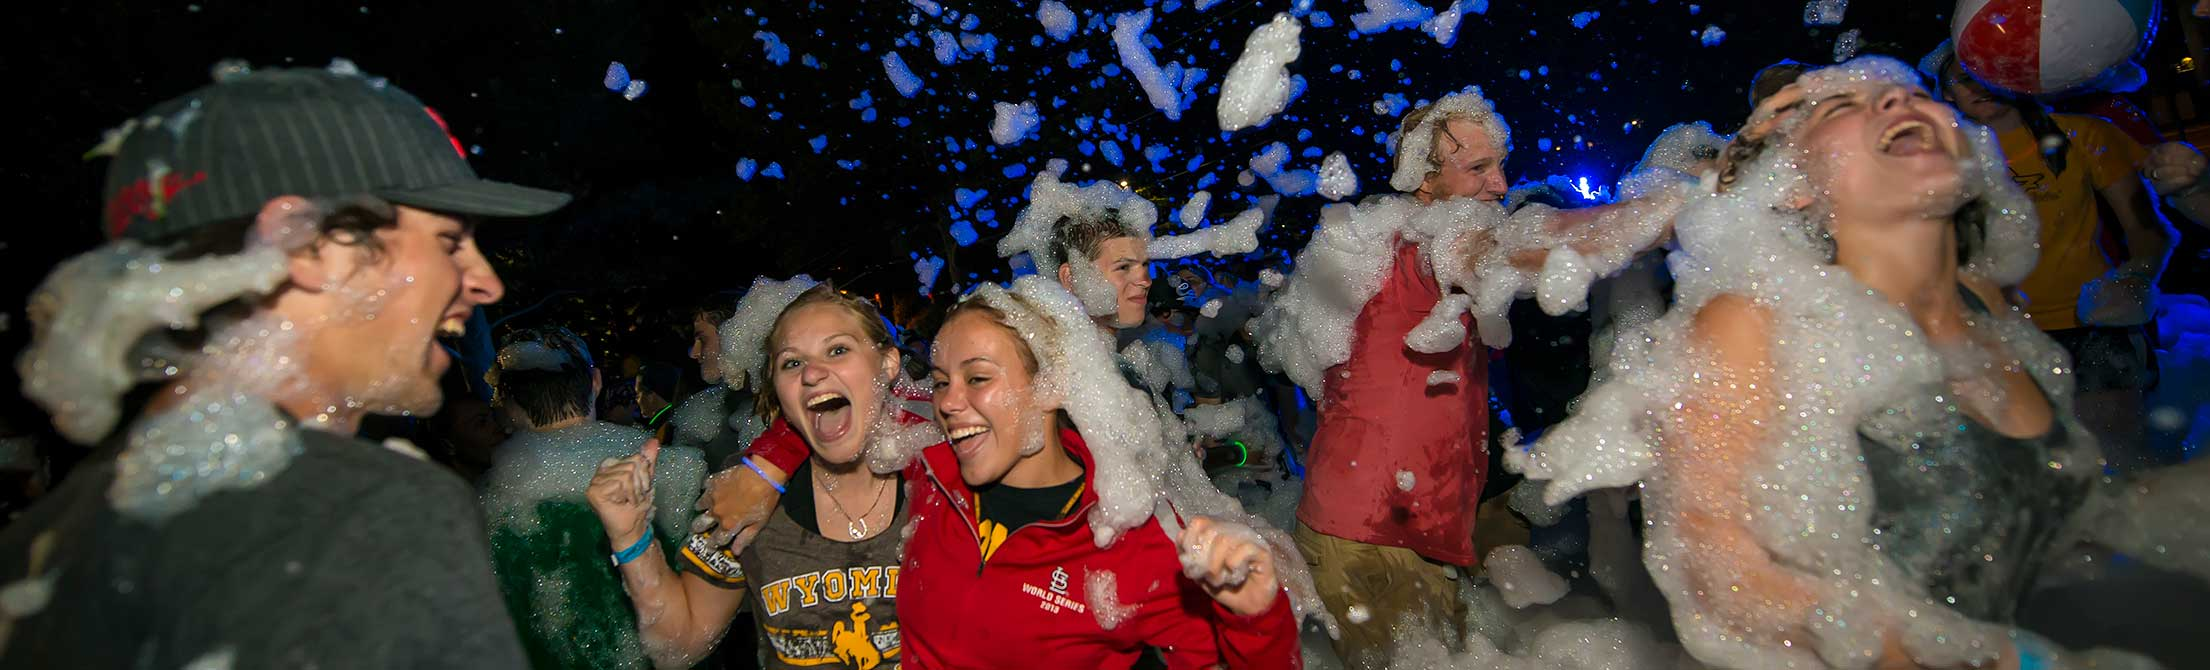 University of Wyoming students enjoy a foam party, one of the possible Summer Bridge activities students may encounter.